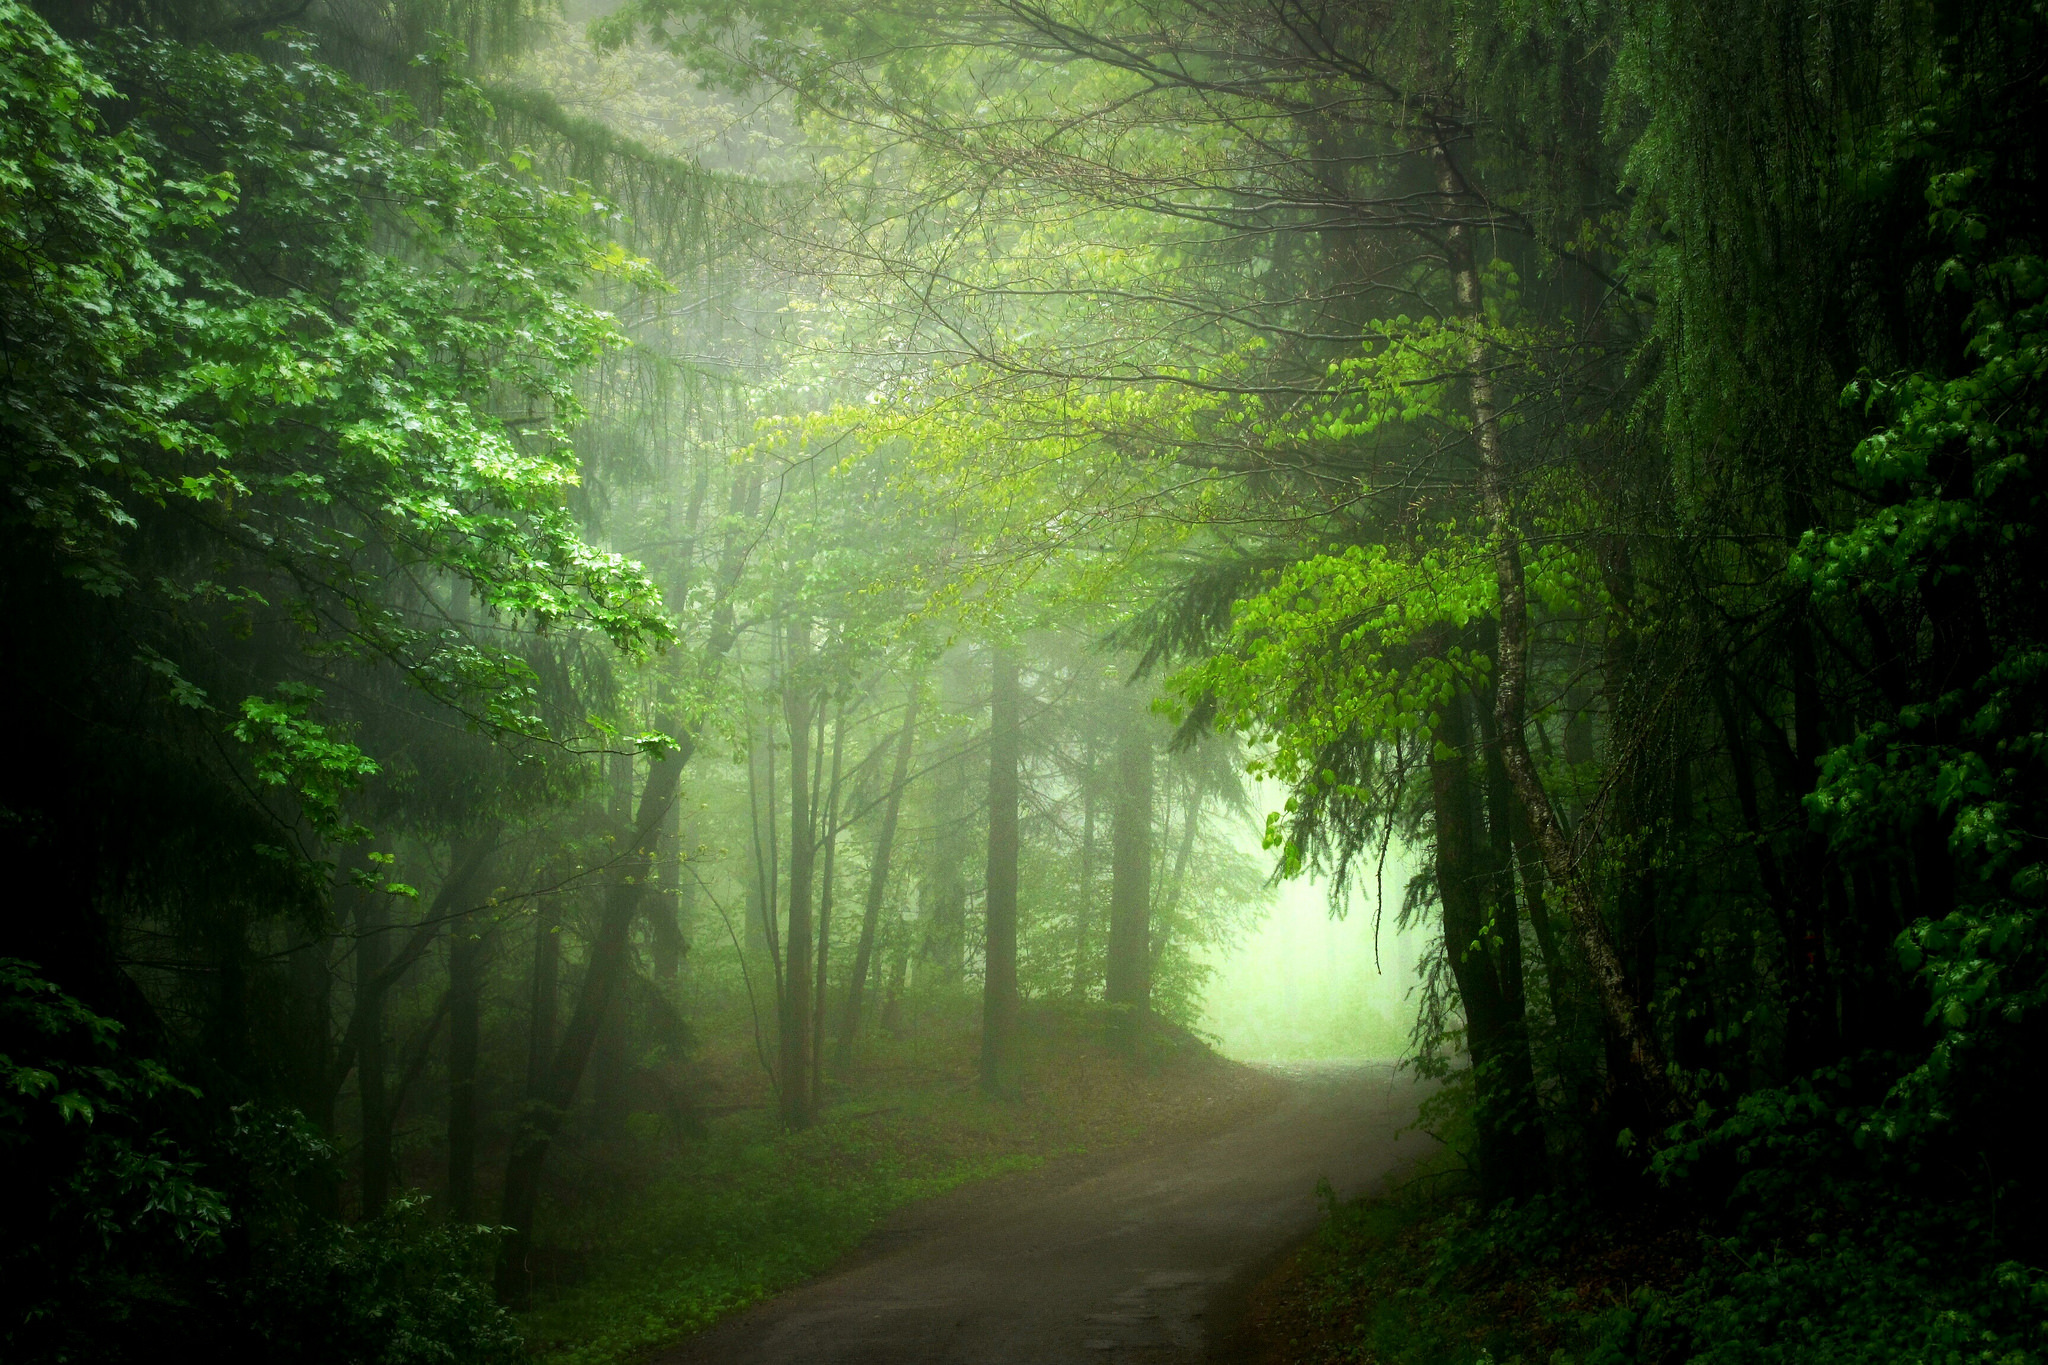 Look - Green misty forest video